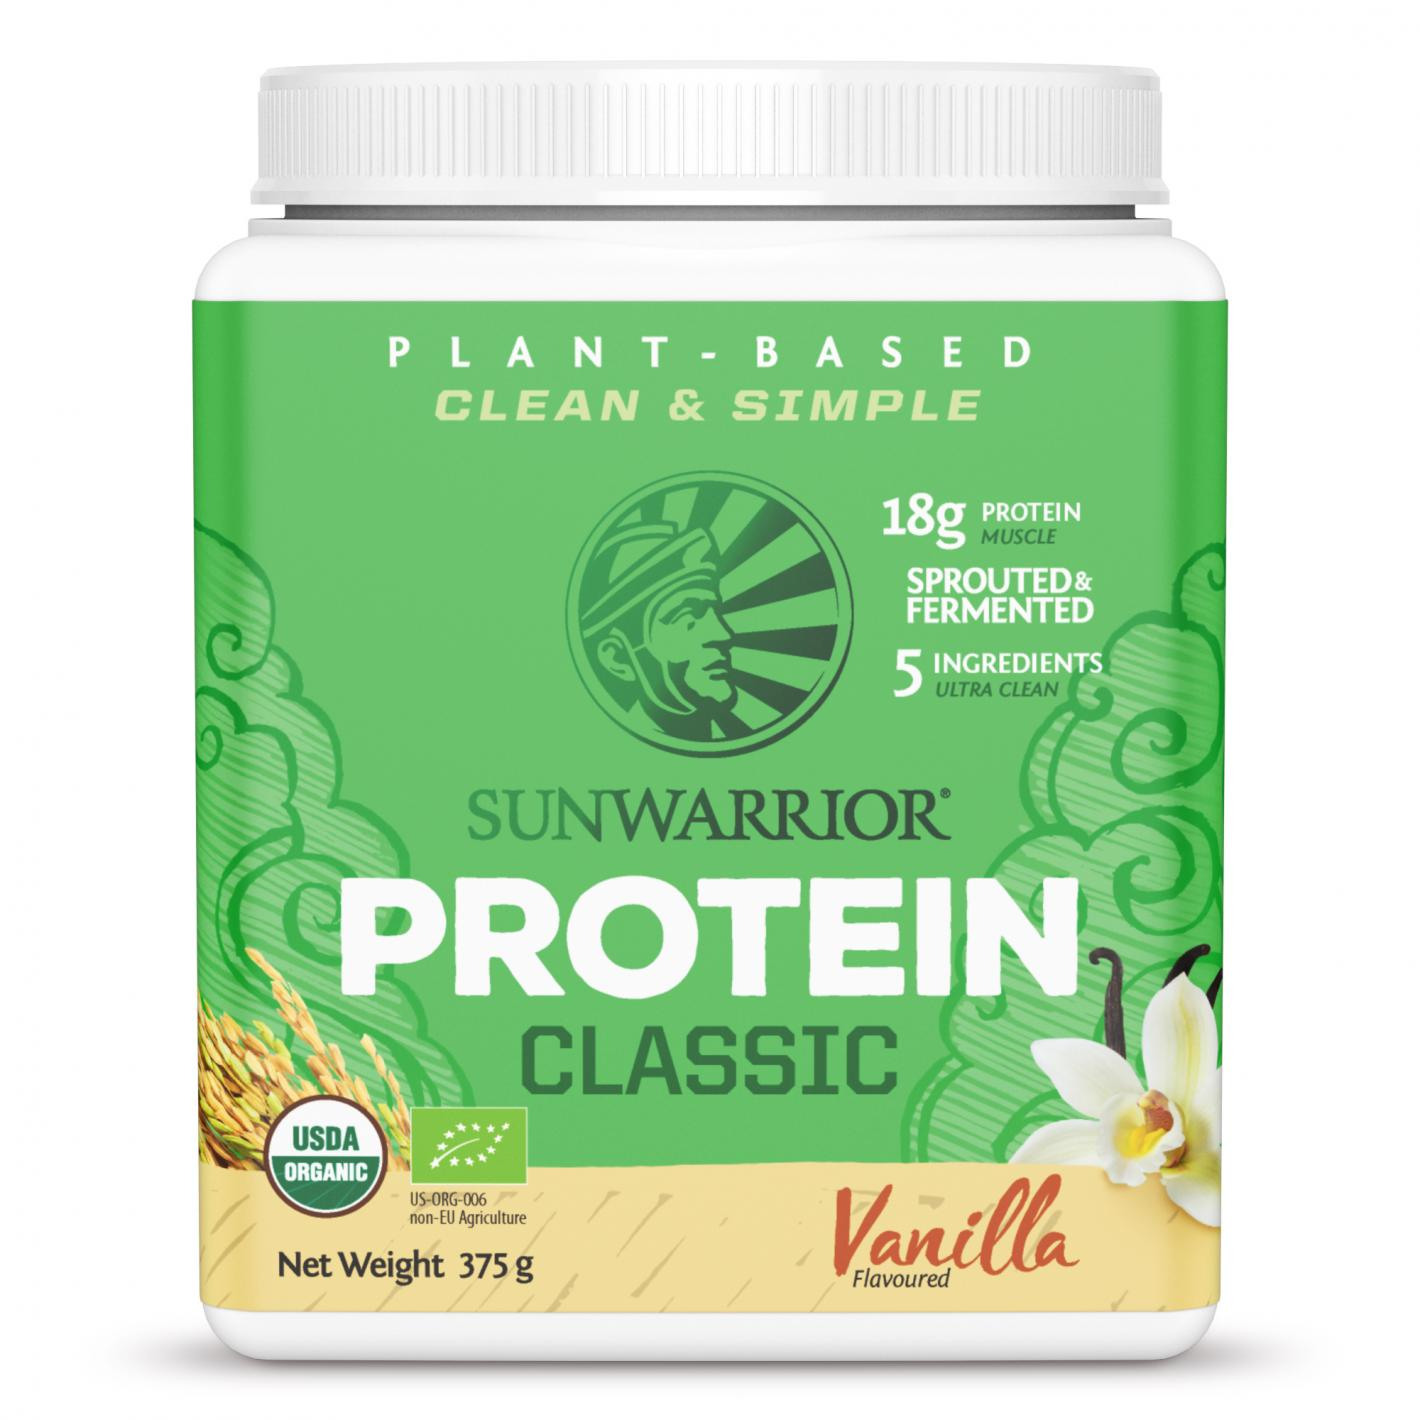 Protein Classic Vanilla 375g (Green Tub) (Currently Unavailable)